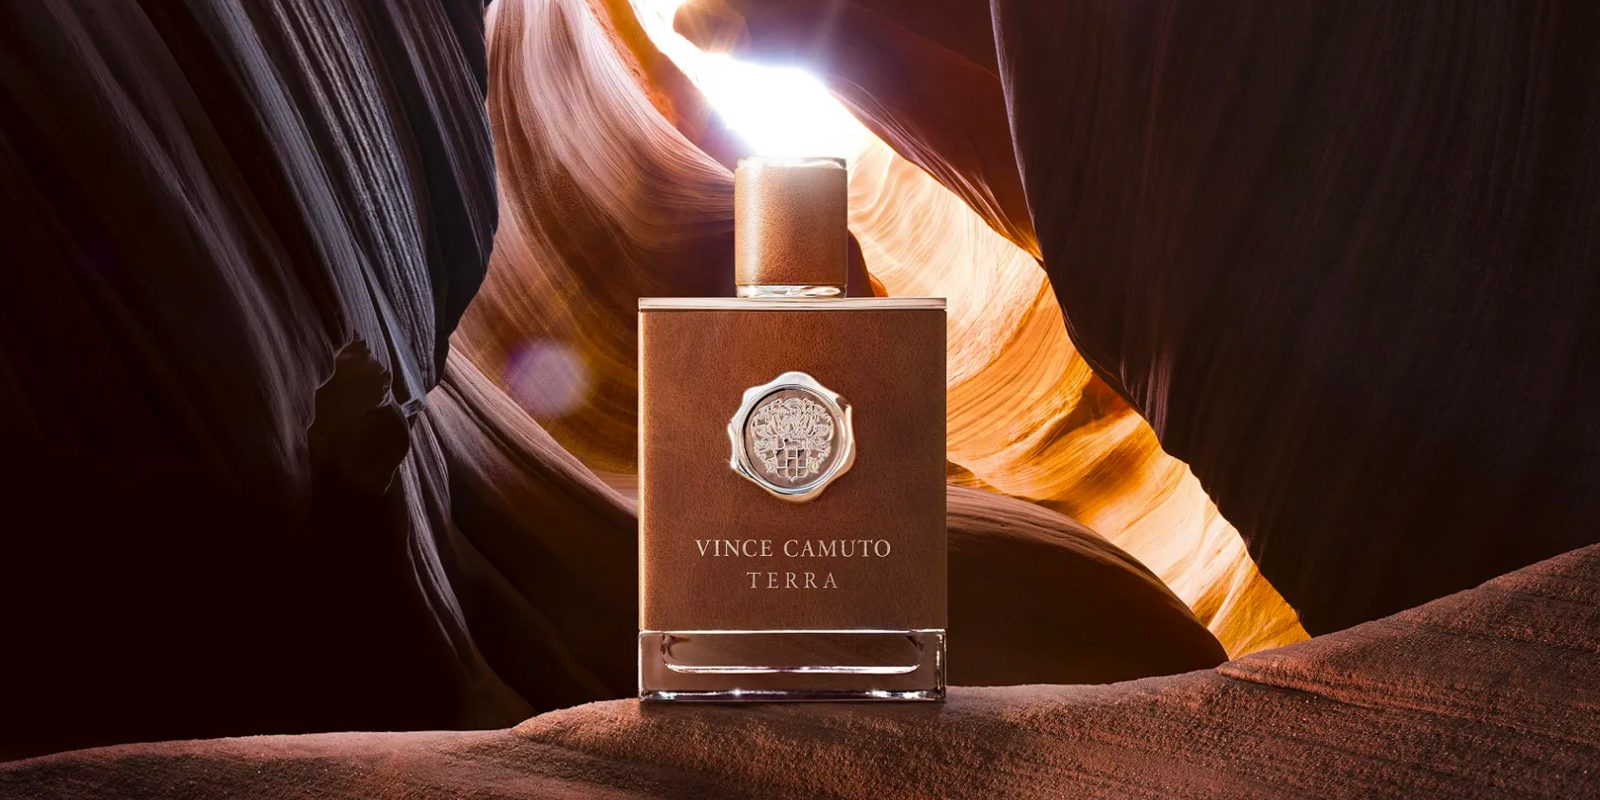 The best new cologne this holiday season: Vince Camuto, Jimmy Choo, more